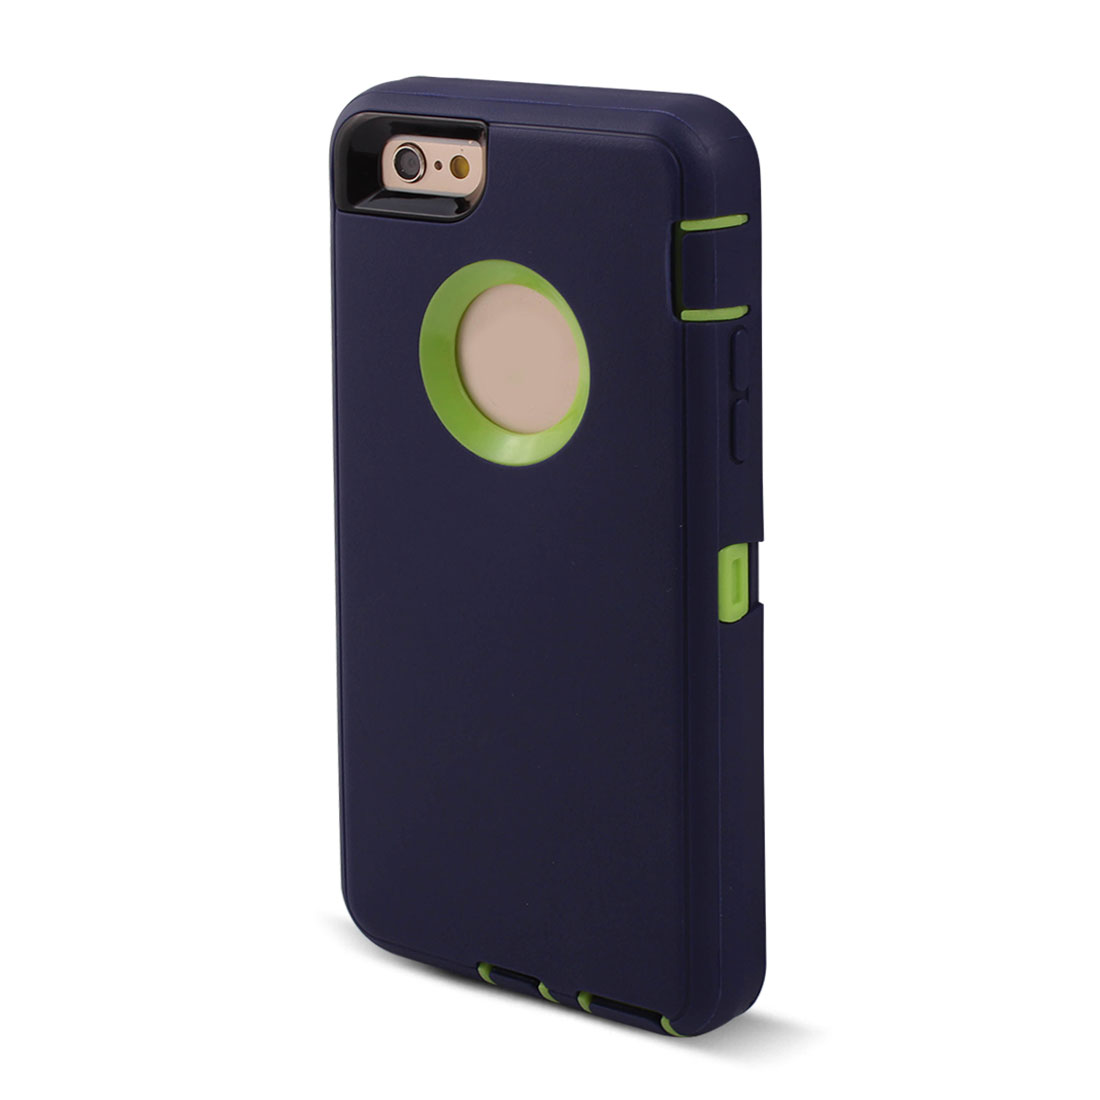 TPU Scratch Protective Rotary Belt Clip Phone Case Navy Blue for iPhone 6 Plus